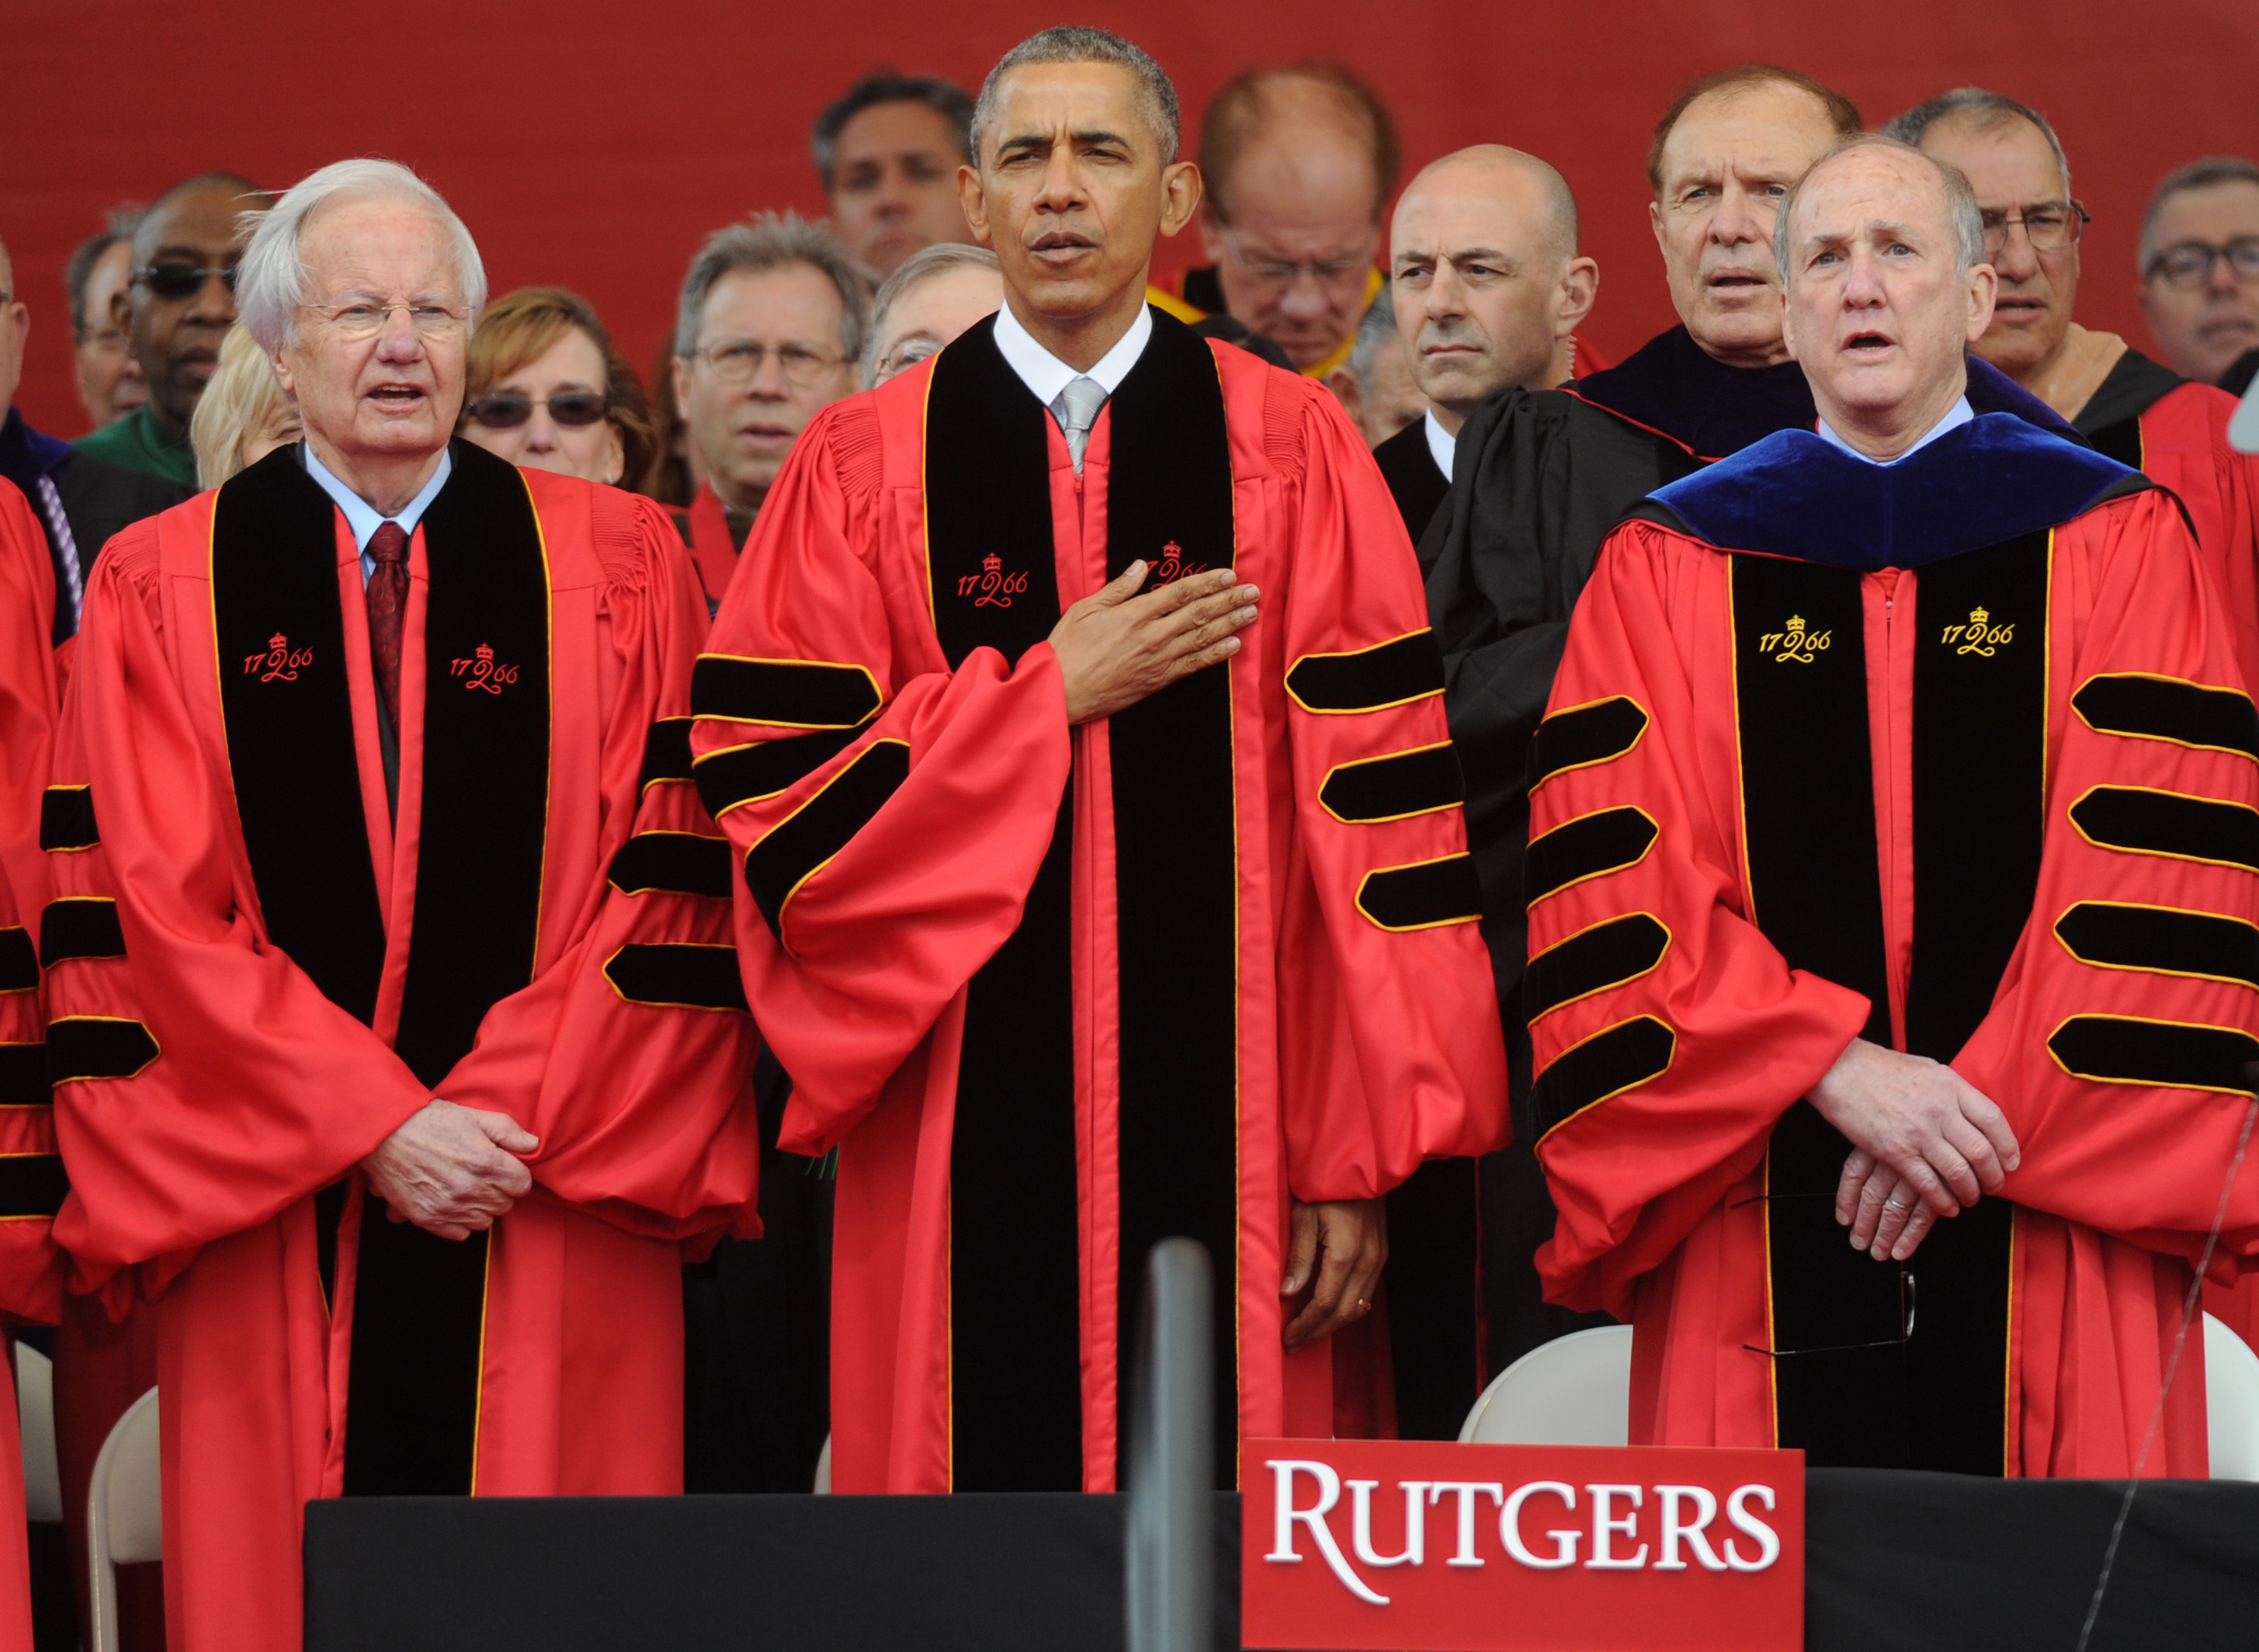 President Obama Speaks At Rutgers University 2016 Commencement - New Jersey